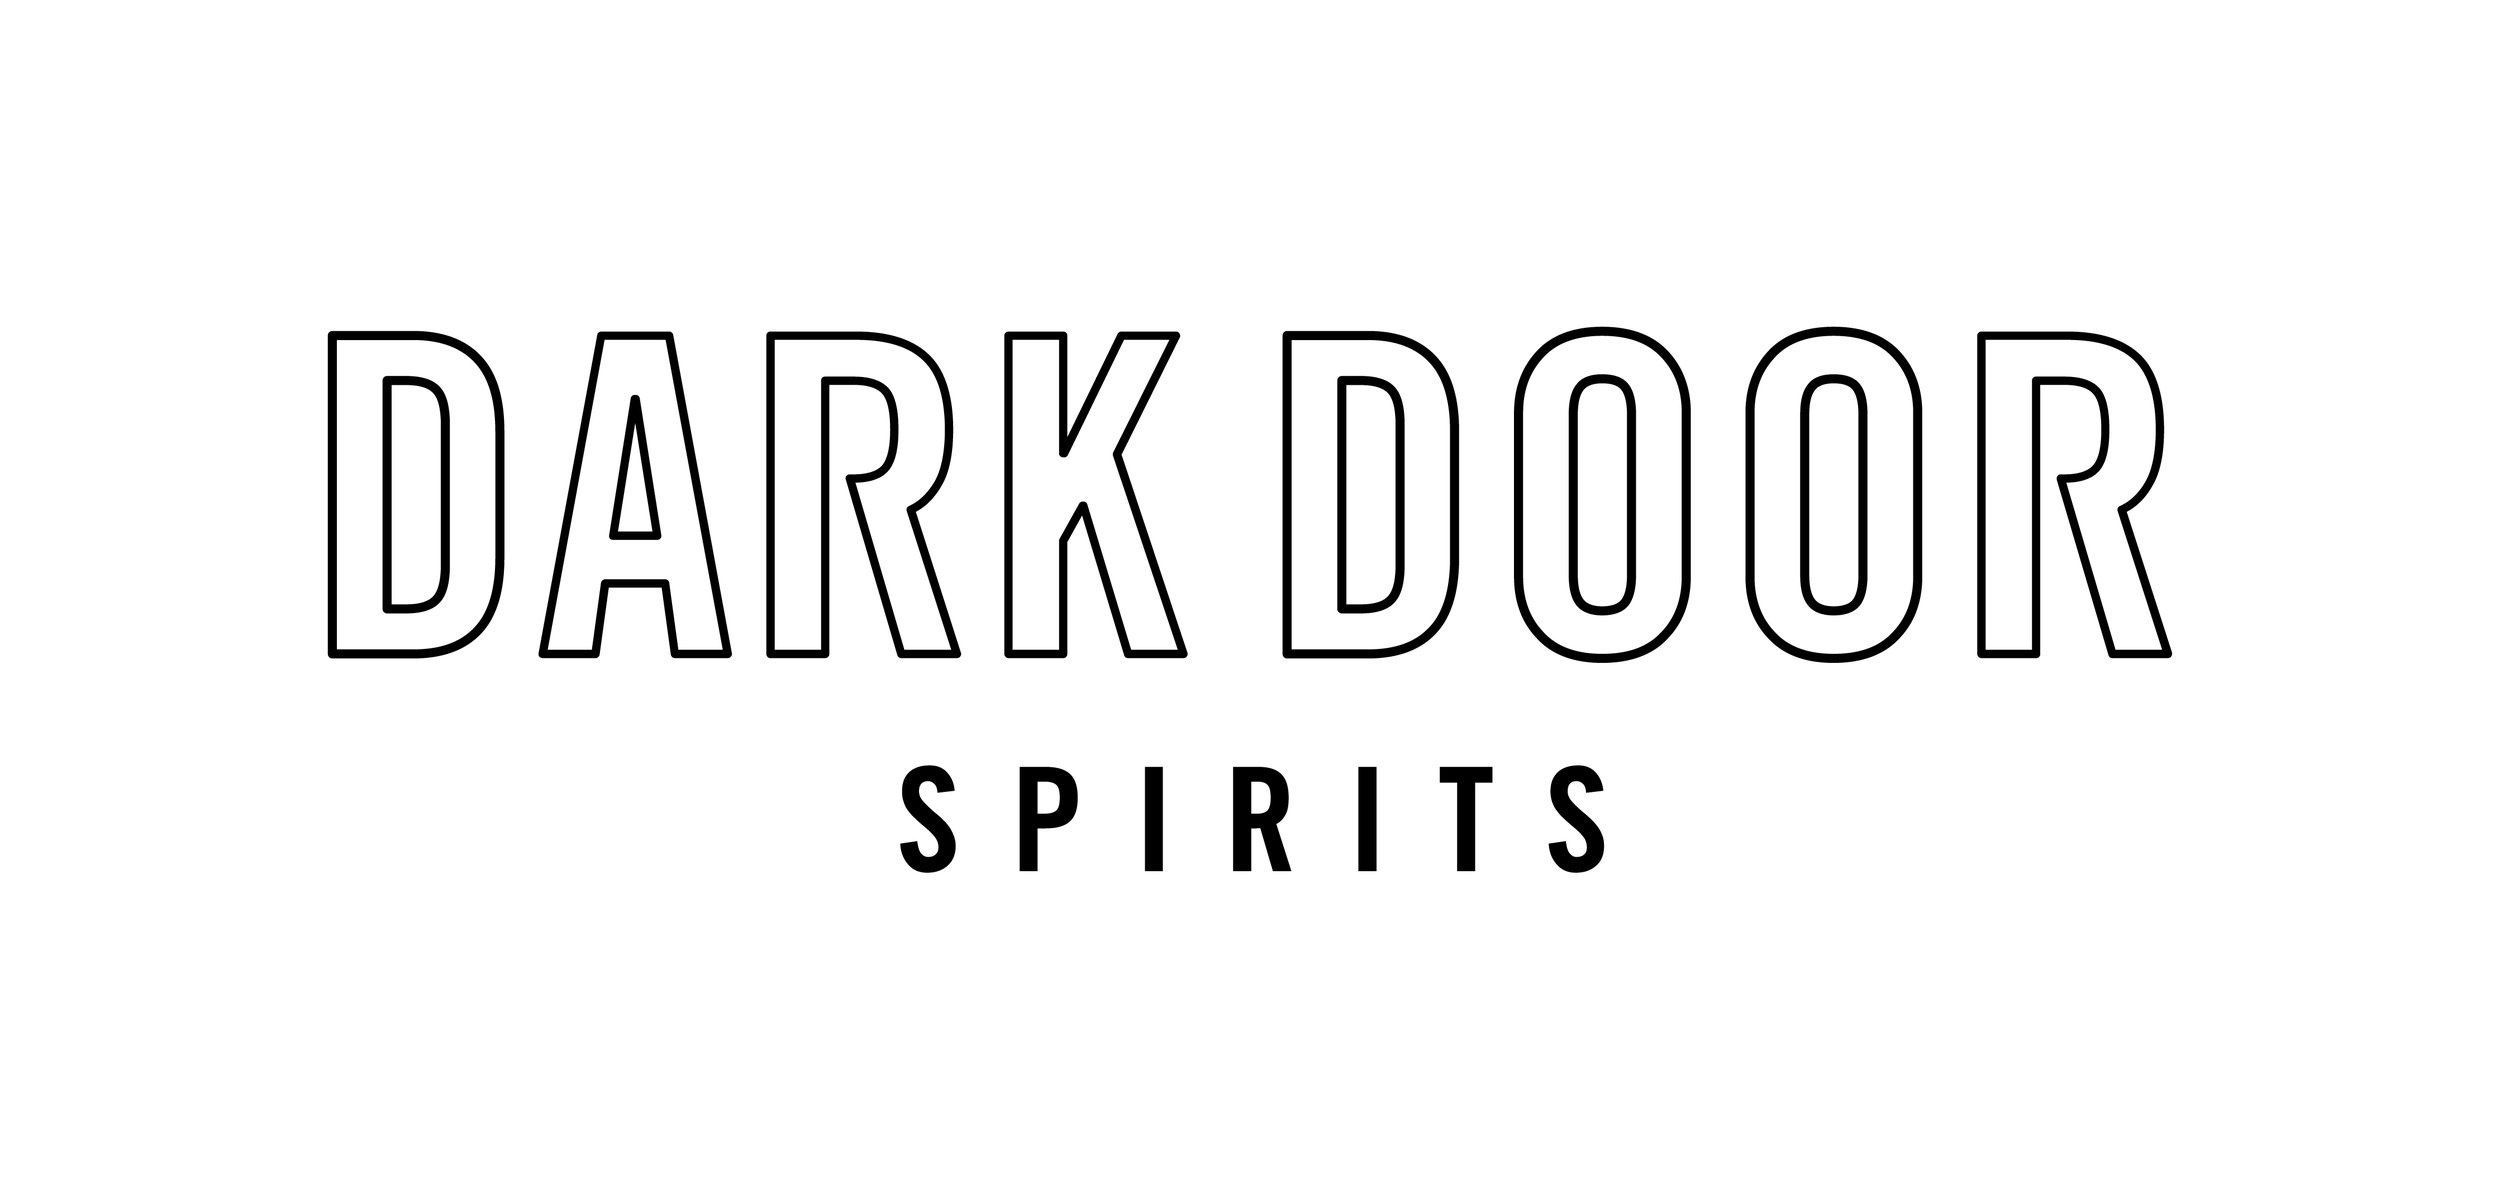 DarkDoor_Logo_Black.jpg